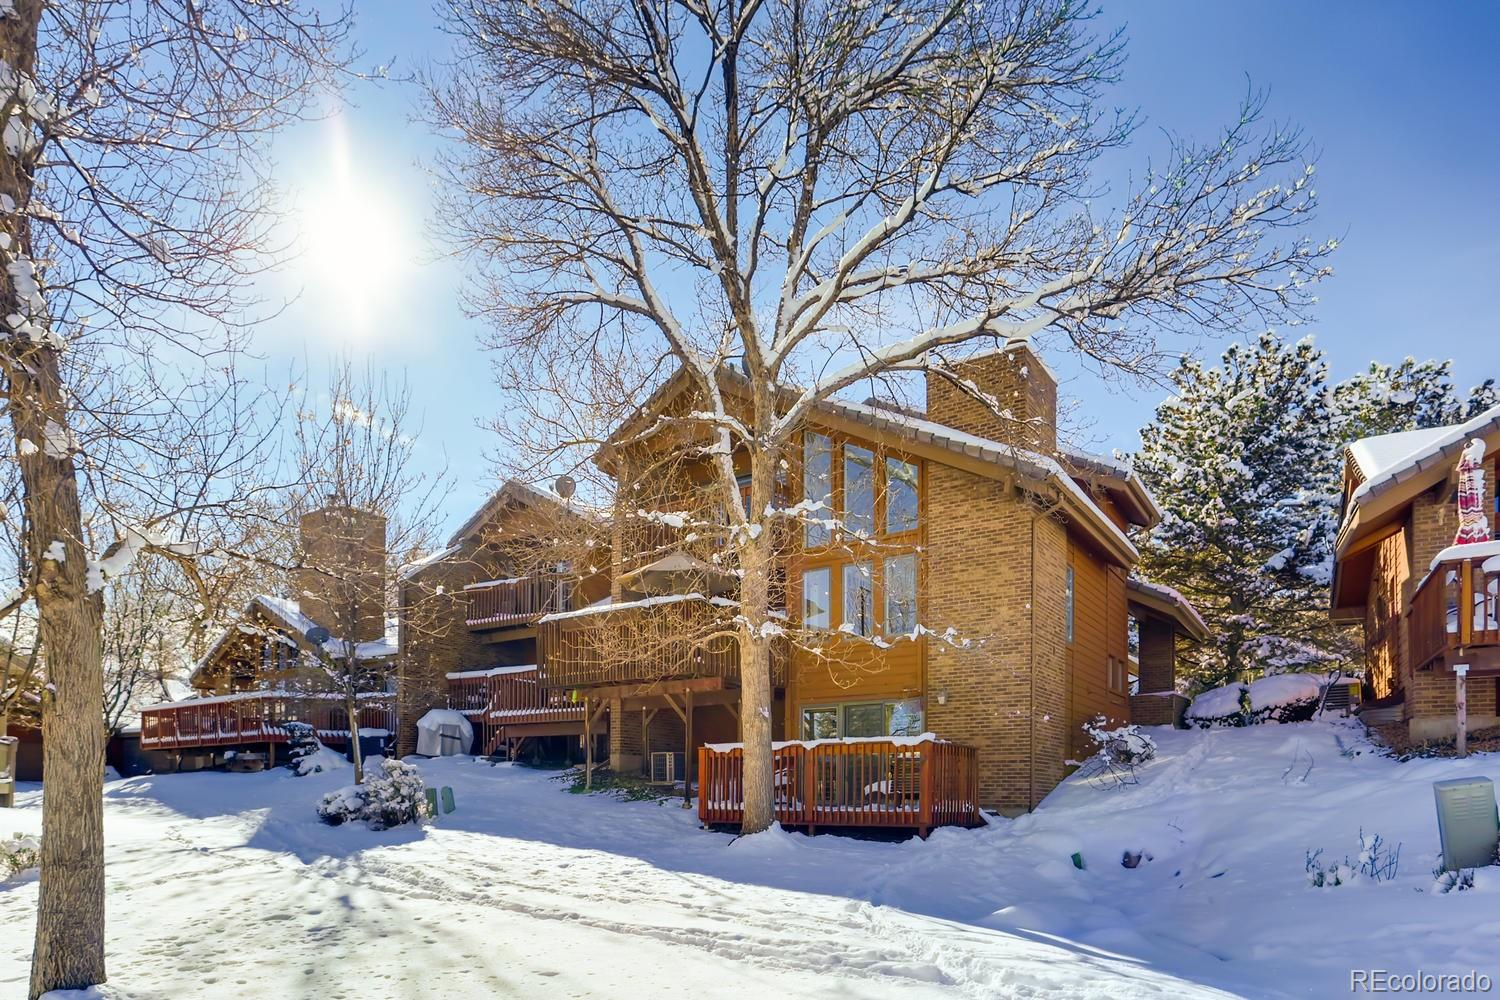 MLS# 2321846 - 1 - 5453 Coyote Canyon Way #A, Morrison, CO 80465